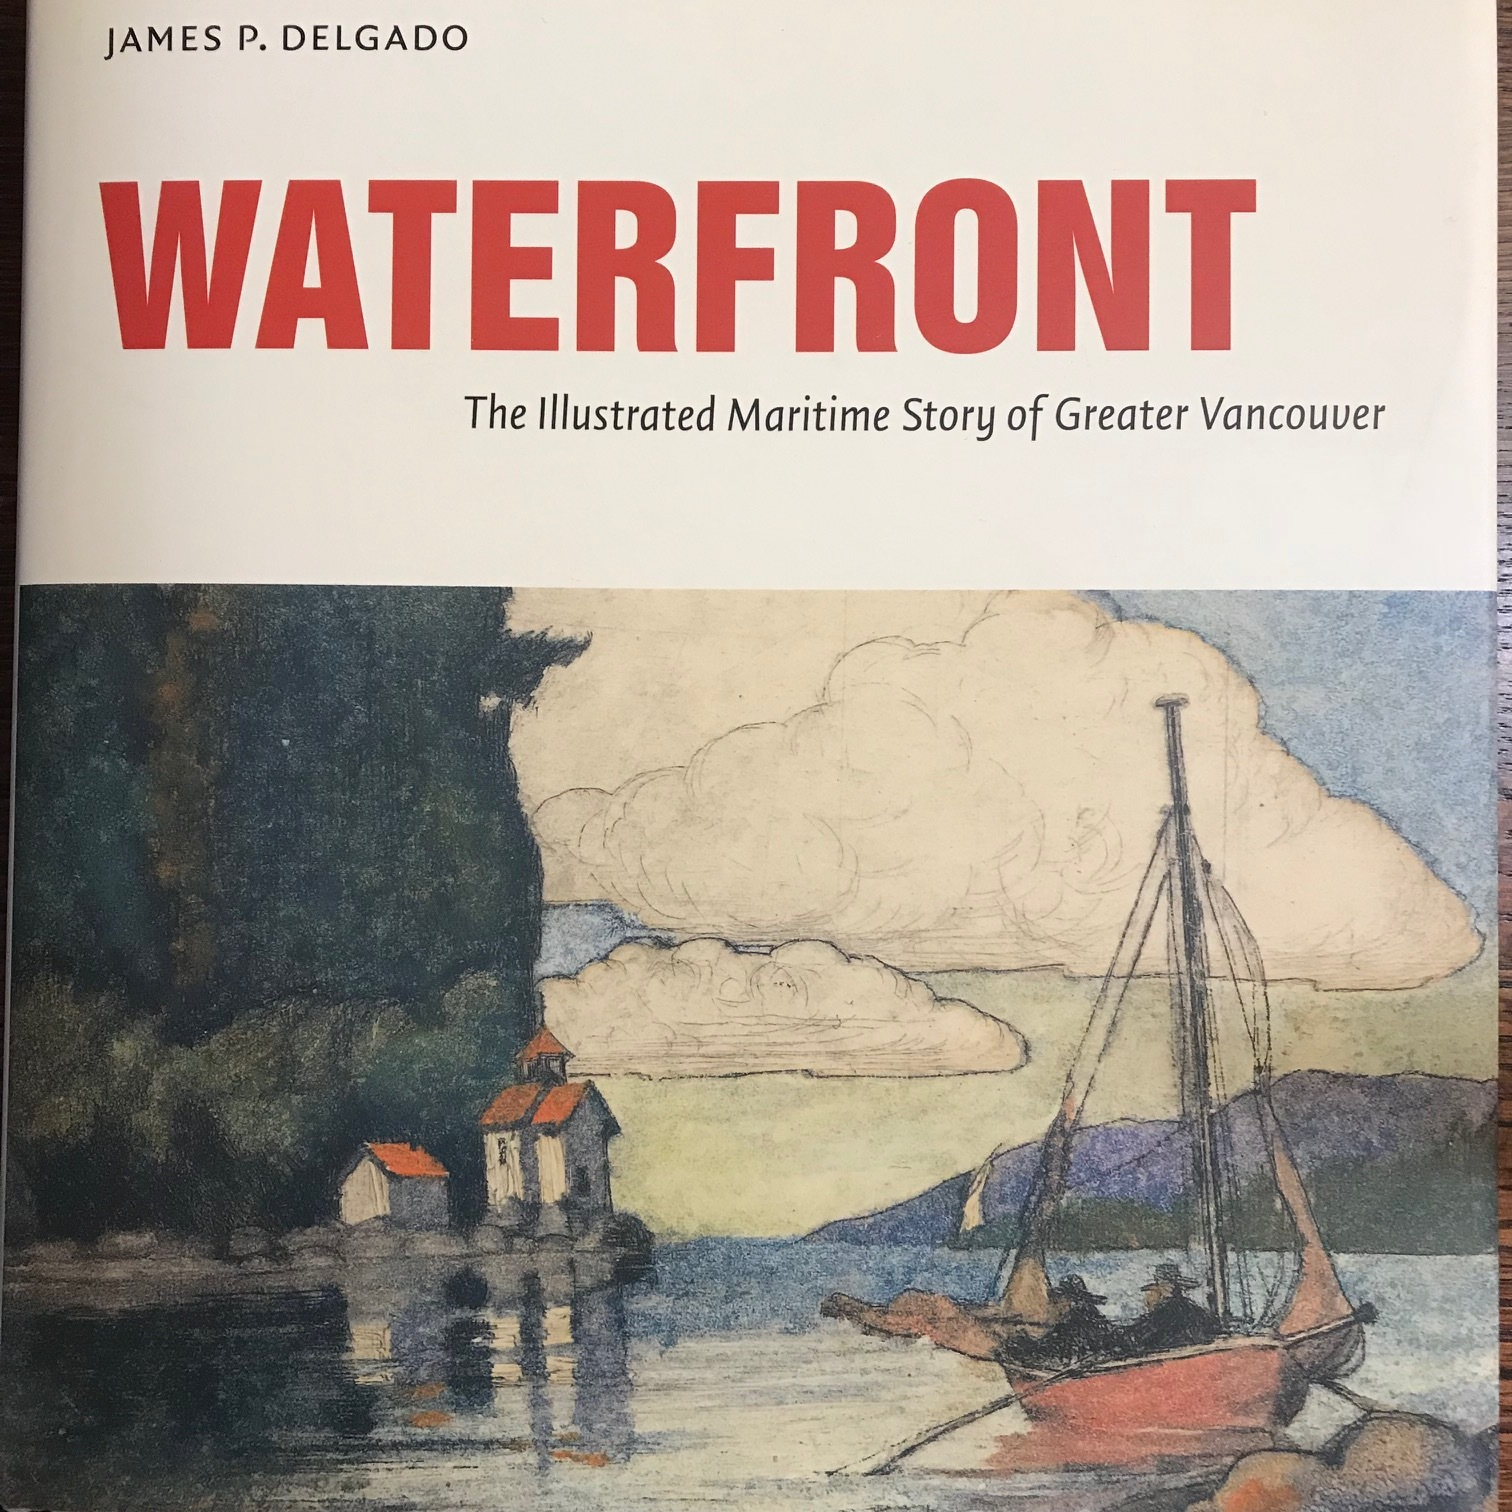 Waterfront The Illustrated Maritime Story of Greater Vancouver